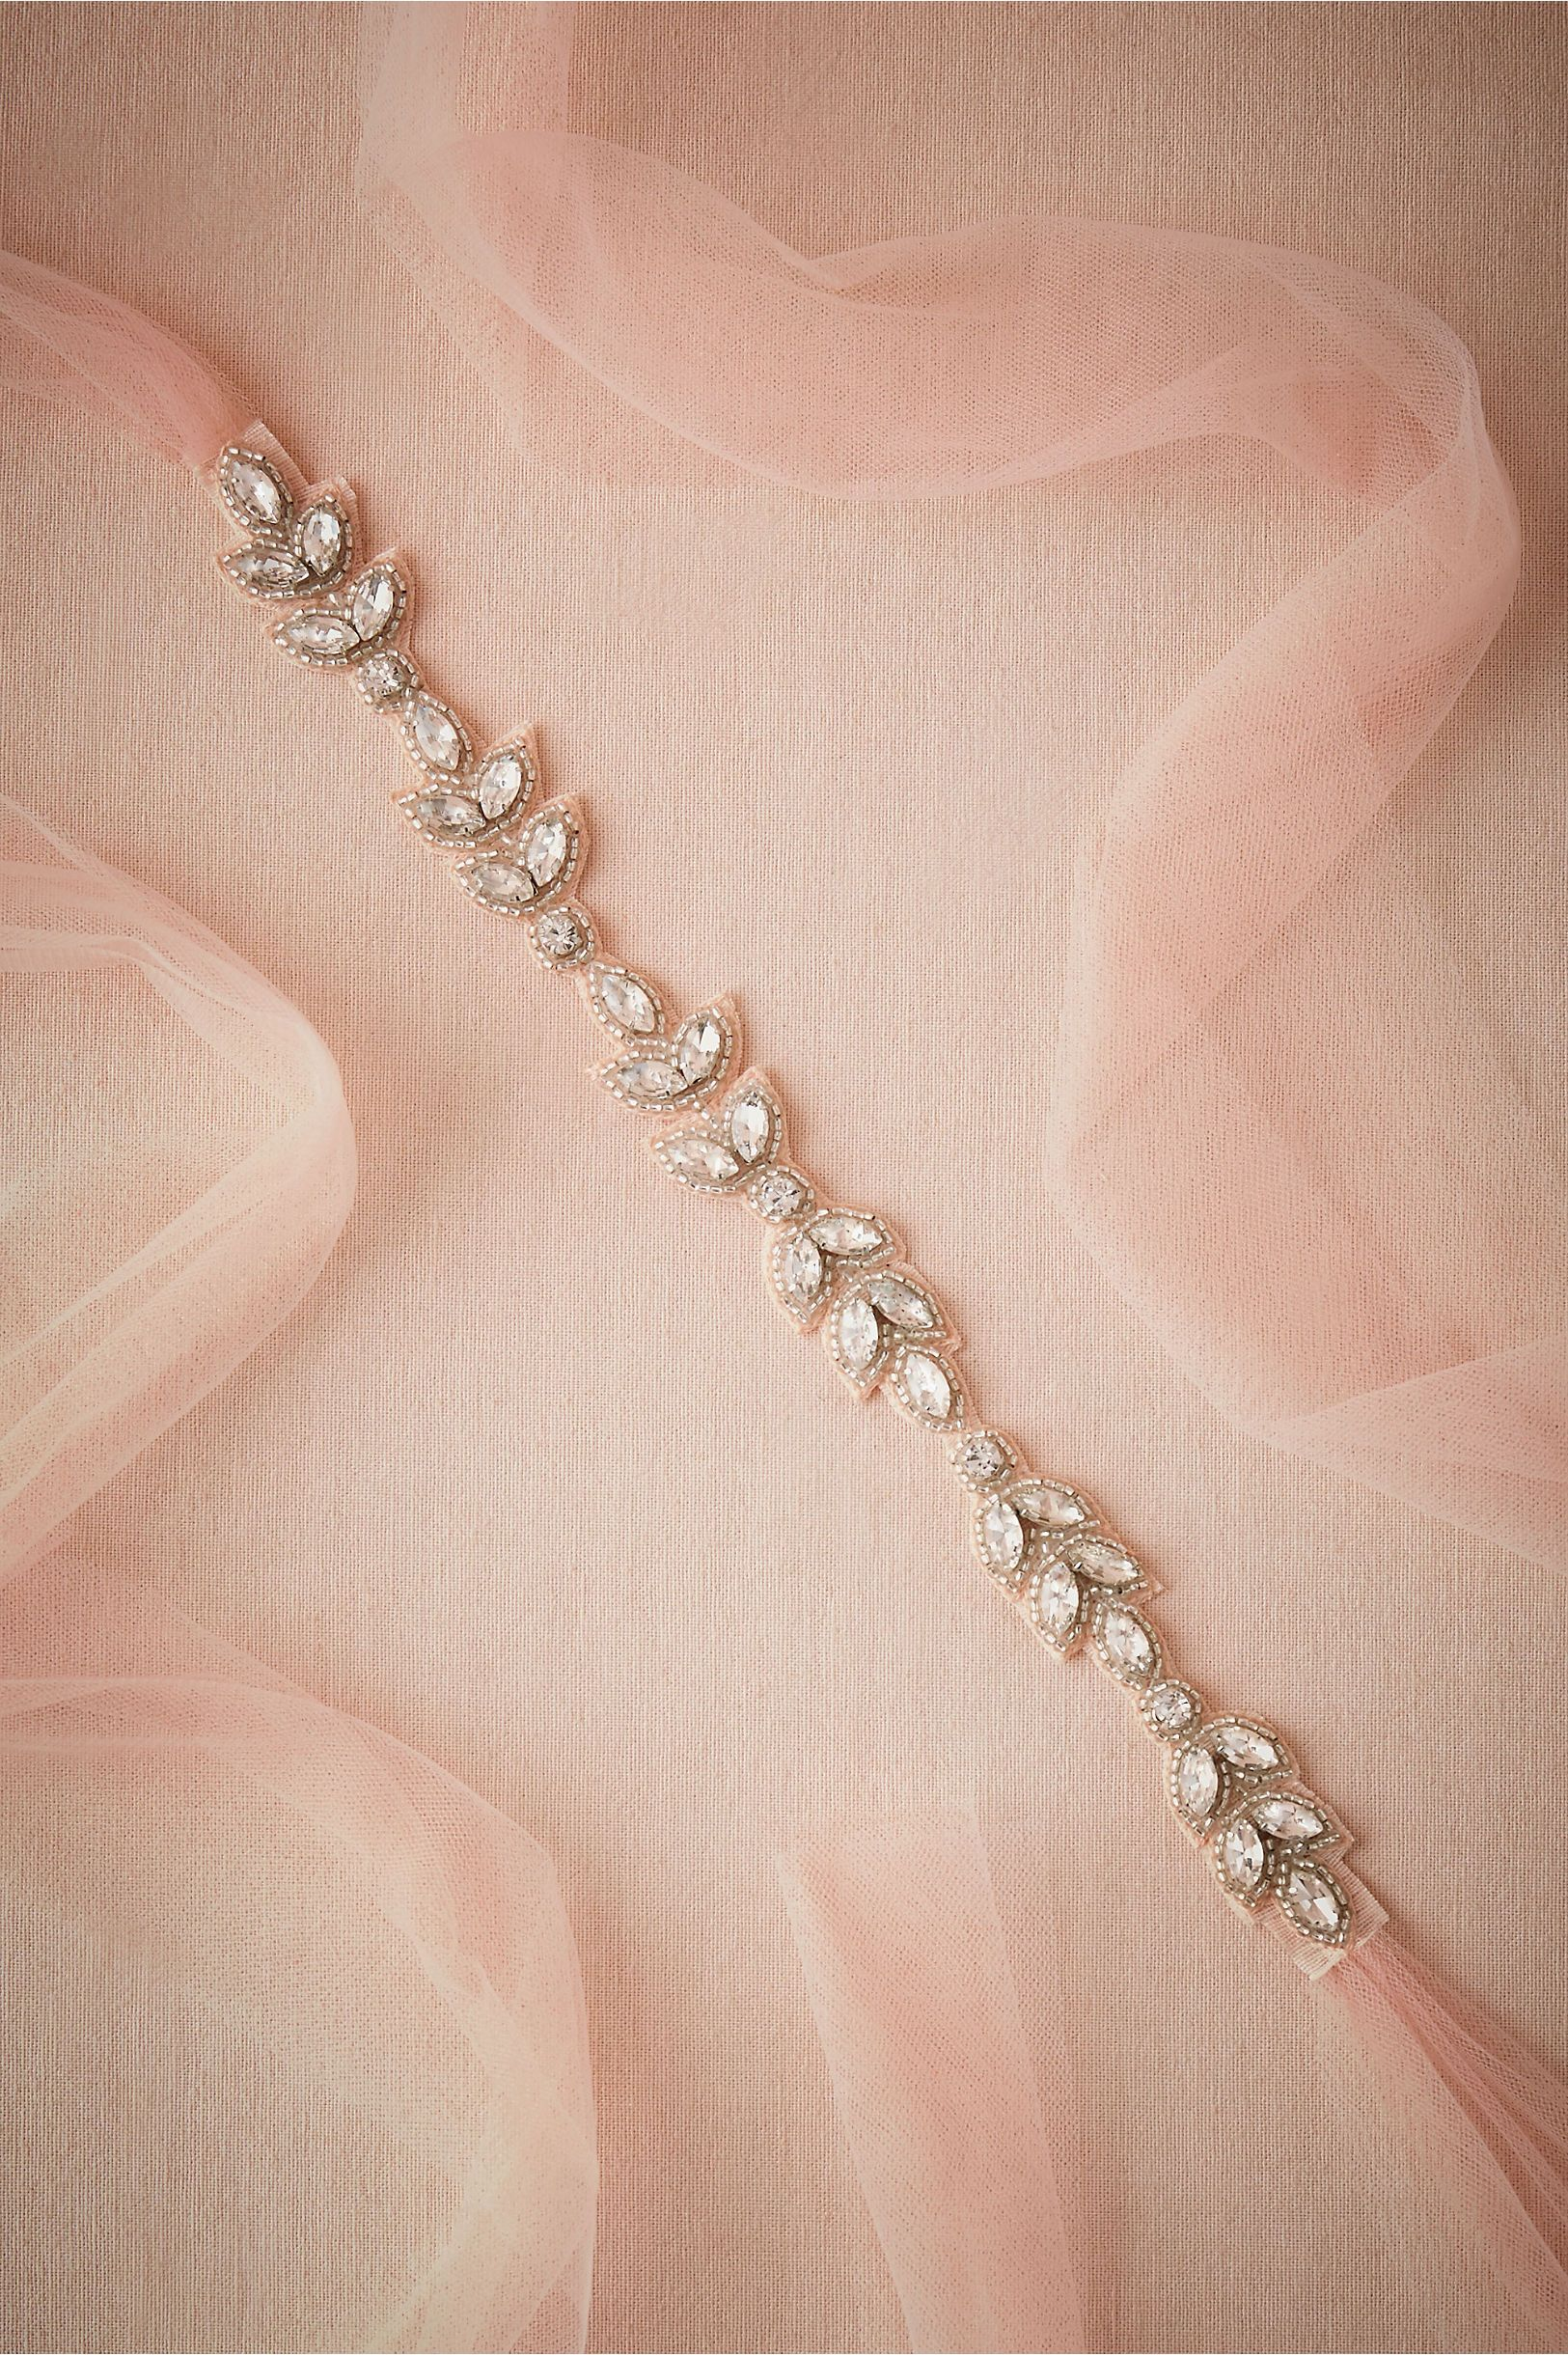 BHLDN Nilda Sash in  Shoes & Accessories Belts & Sashes at BHLDN